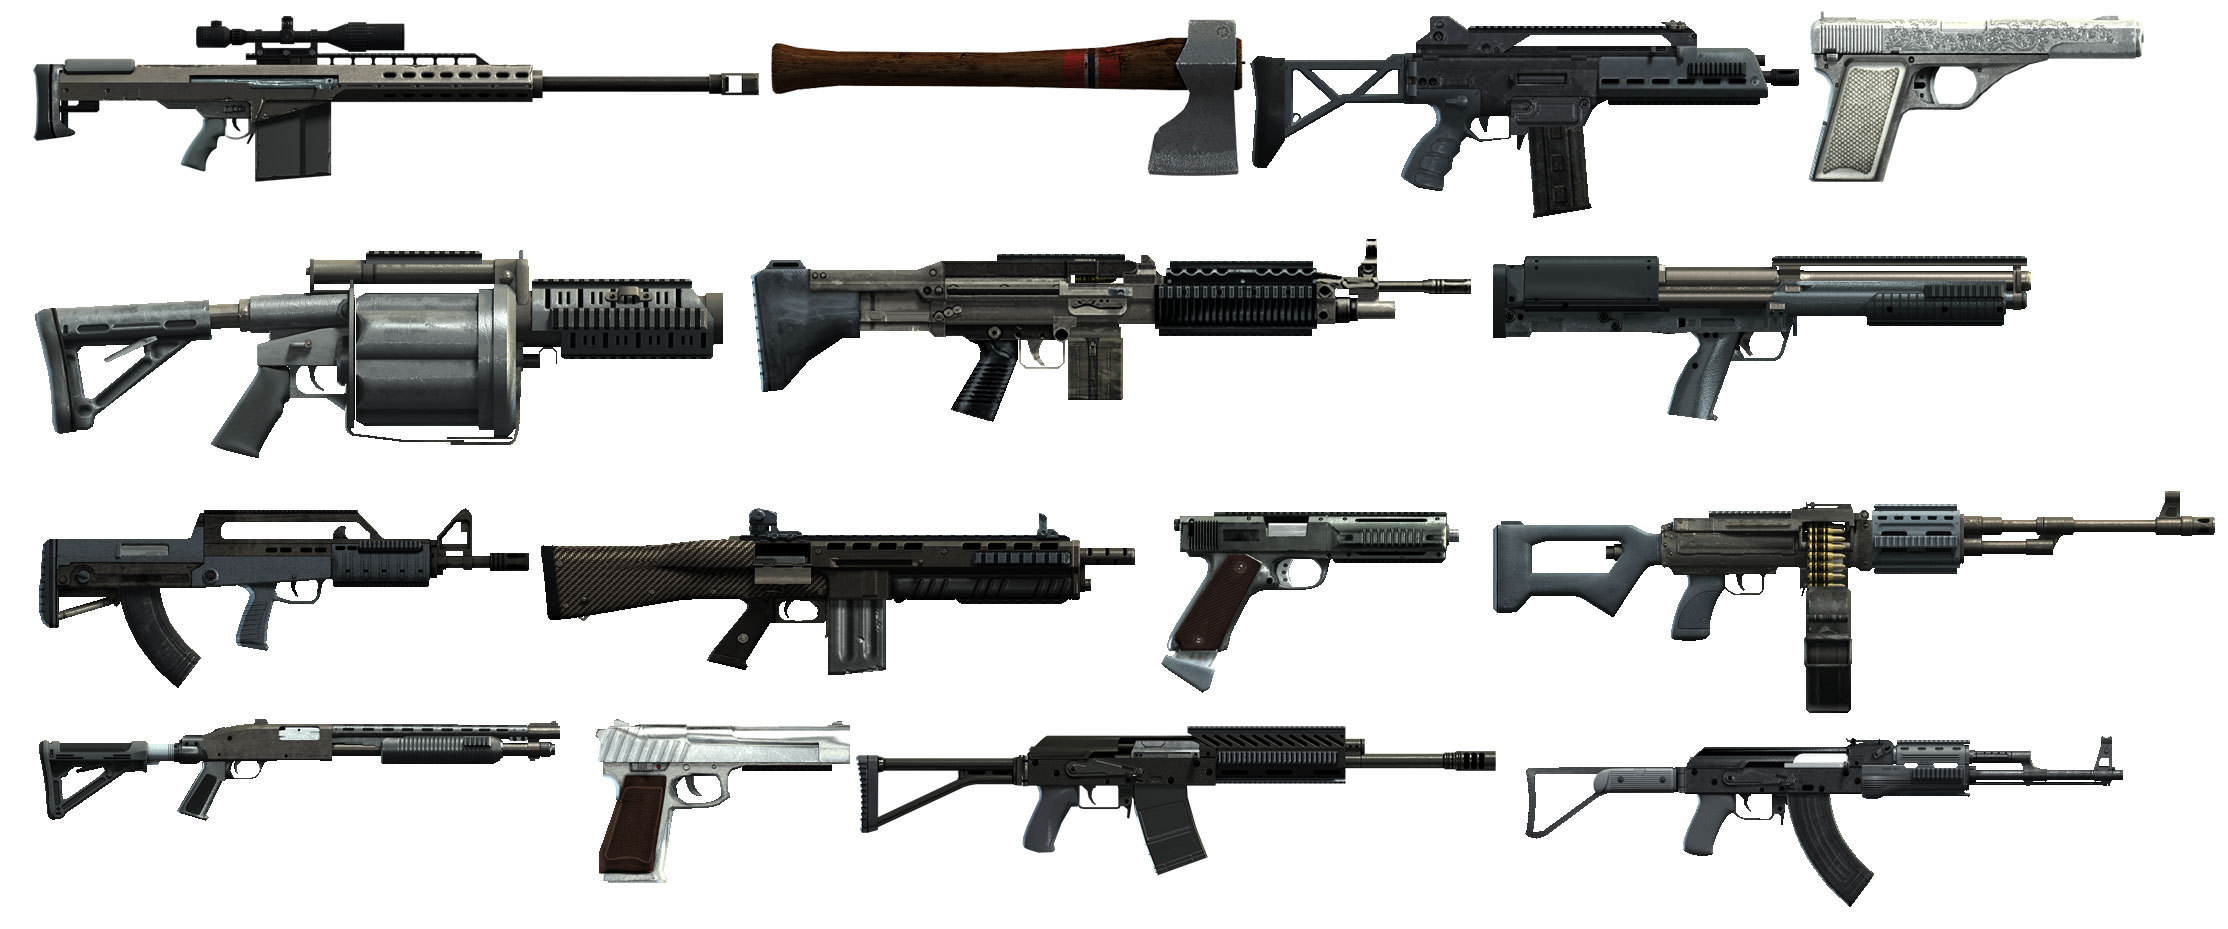 gta 5 guide the best weapons and load out for gta online